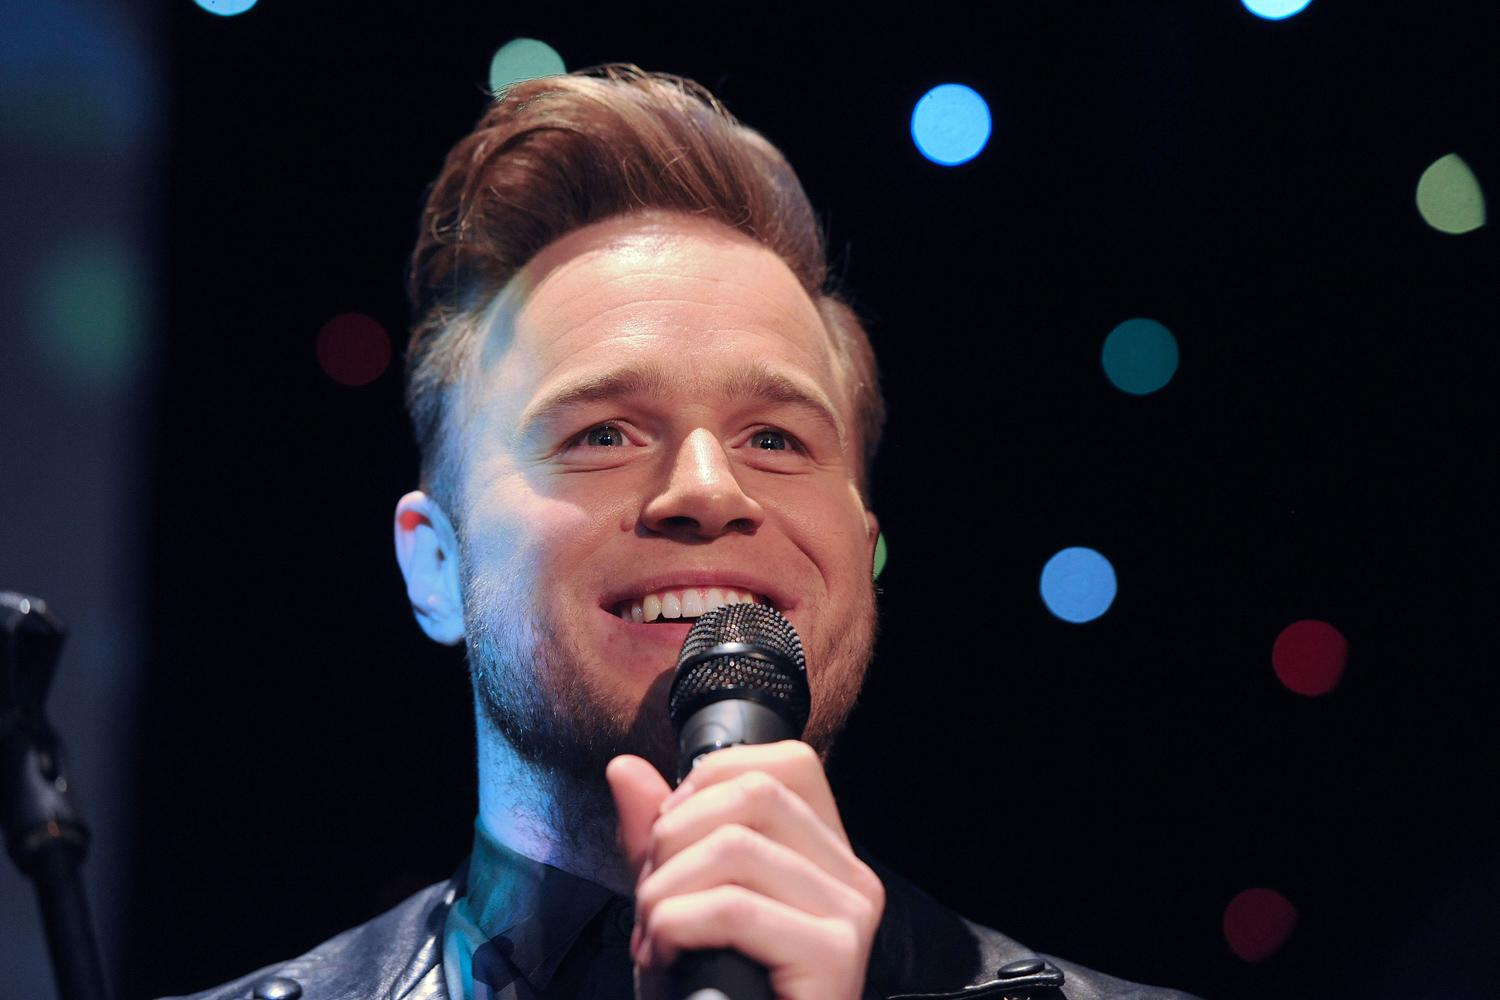 olly murs 39 using online dating app after melanie sykes split 39. Black Bedroom Furniture Sets. Home Design Ideas